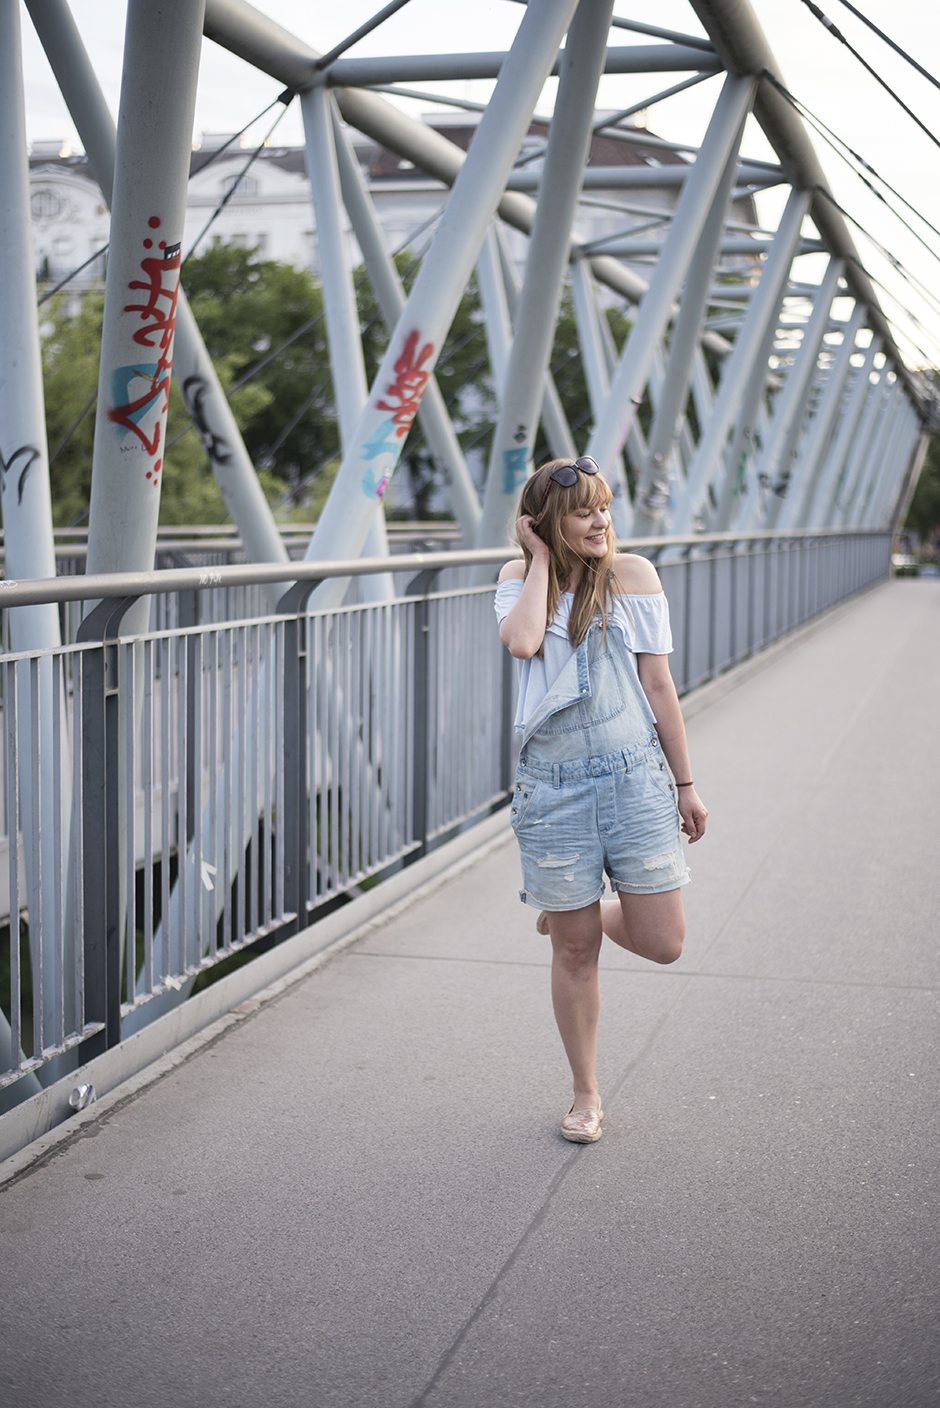 Blog Your Style Outfit Style Sandbox Fashionblog Wien Sommer Schuhe_50